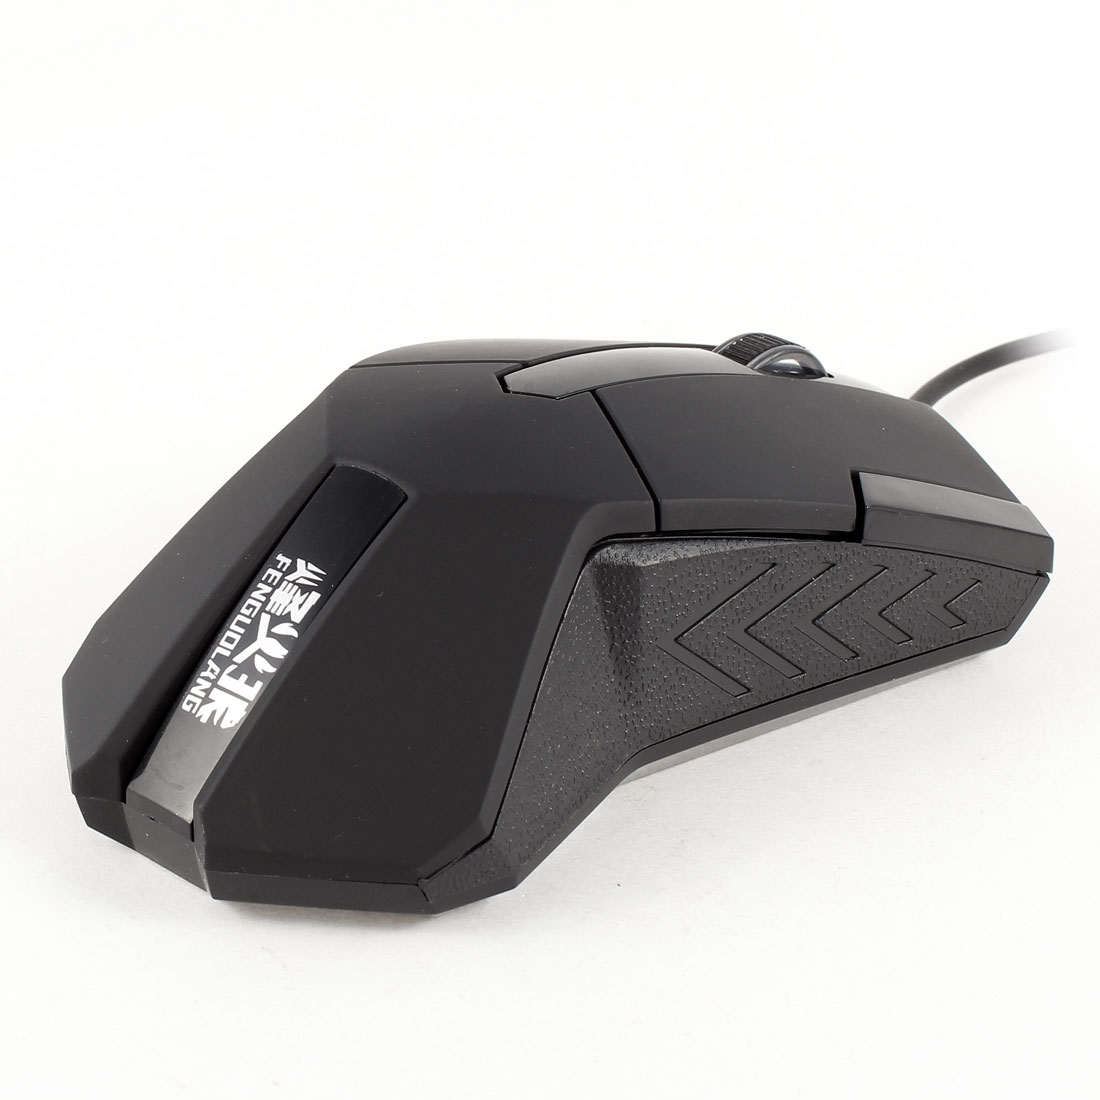 4.6Ft Cable USB 2.0 Adjustable DPI Optical Game Mouse Black for PC